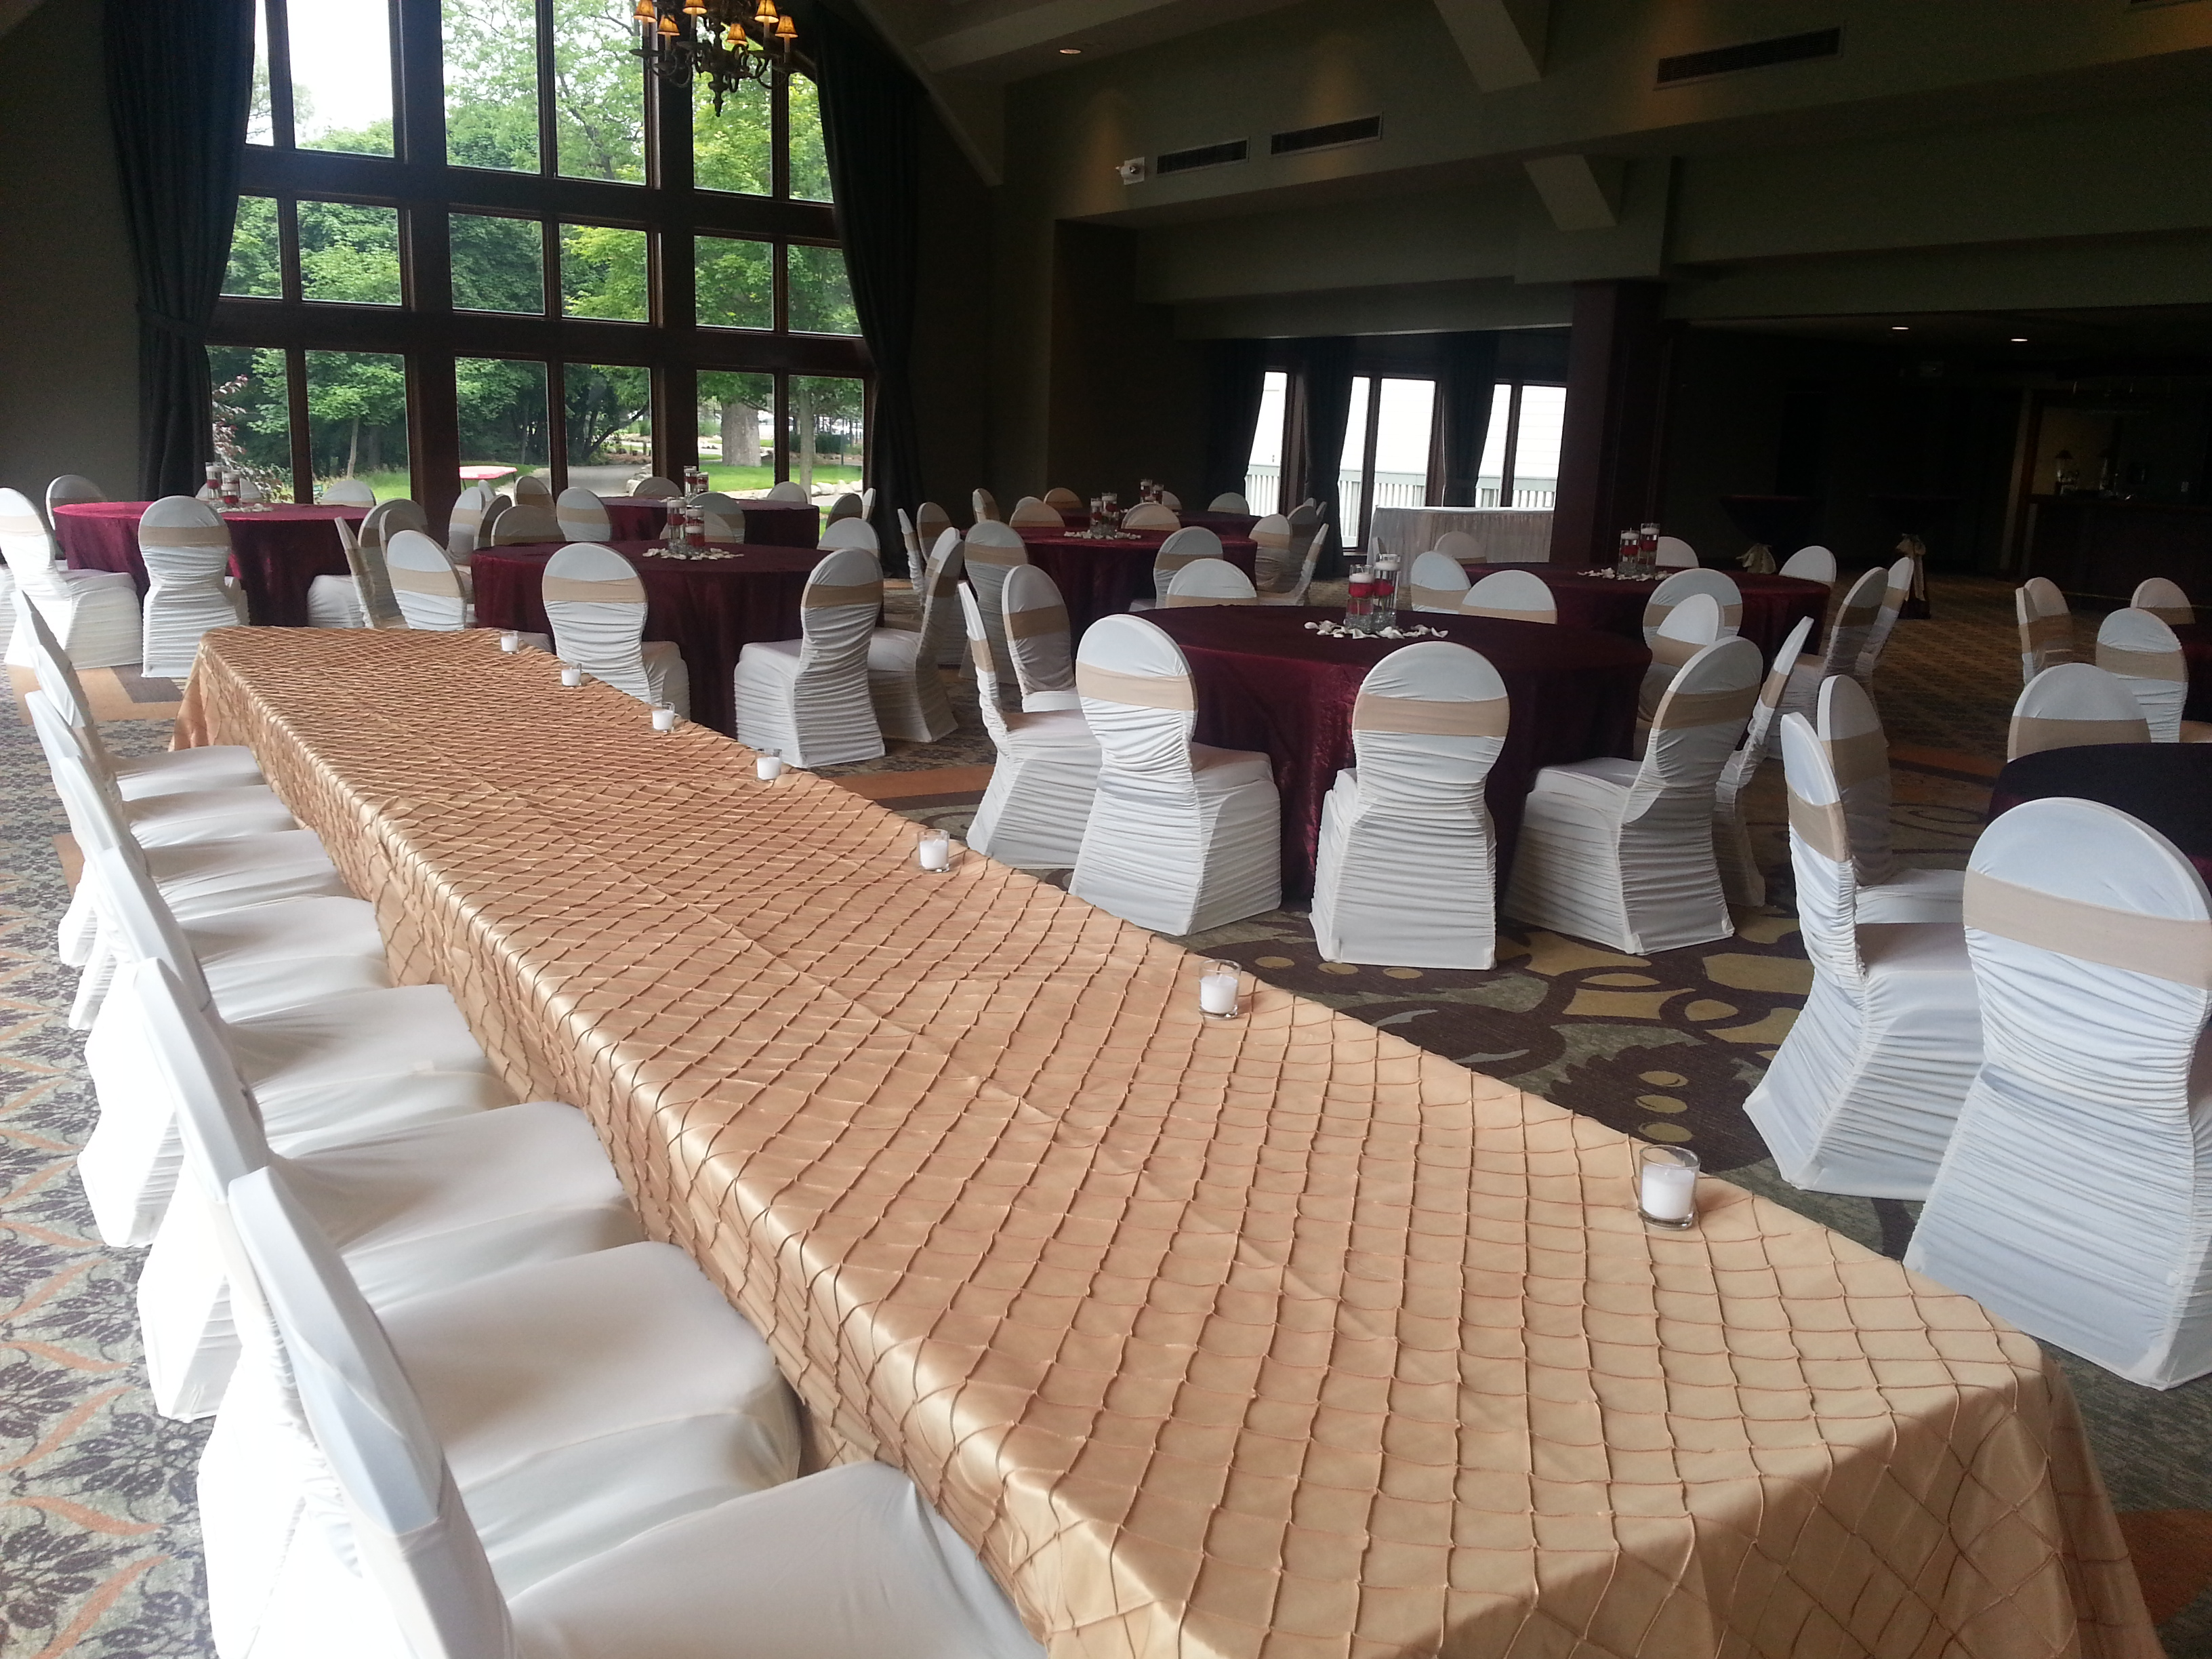 Astounding Couture Linens Events Chair Covers And Linens In Evergreenethics Interior Chair Design Evergreenethicsorg